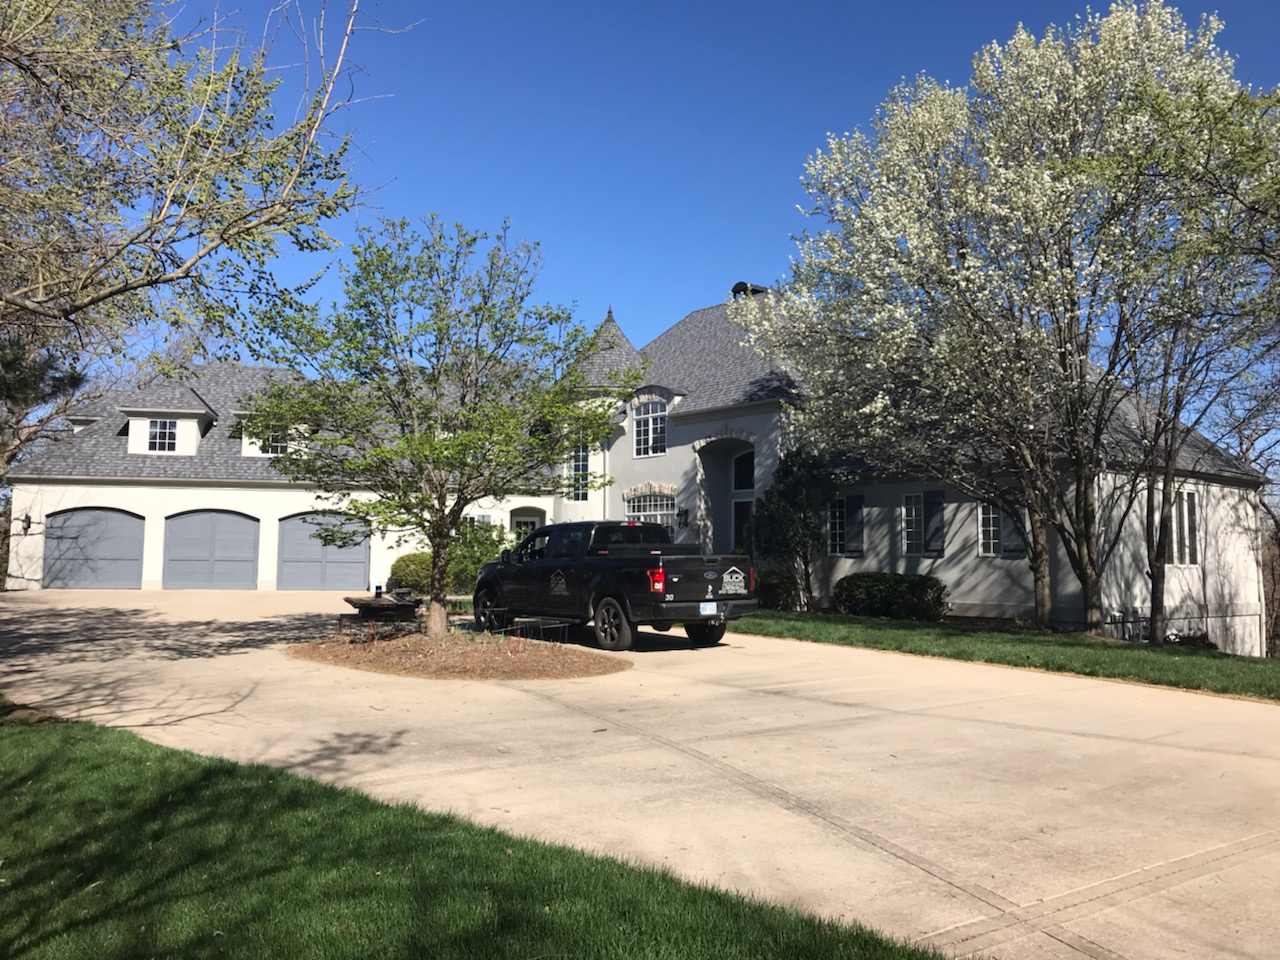 KC residential roofing company - Buck Roofing Kansas and Missouri - Certainteed Landmark Pro - Max Def Pewter